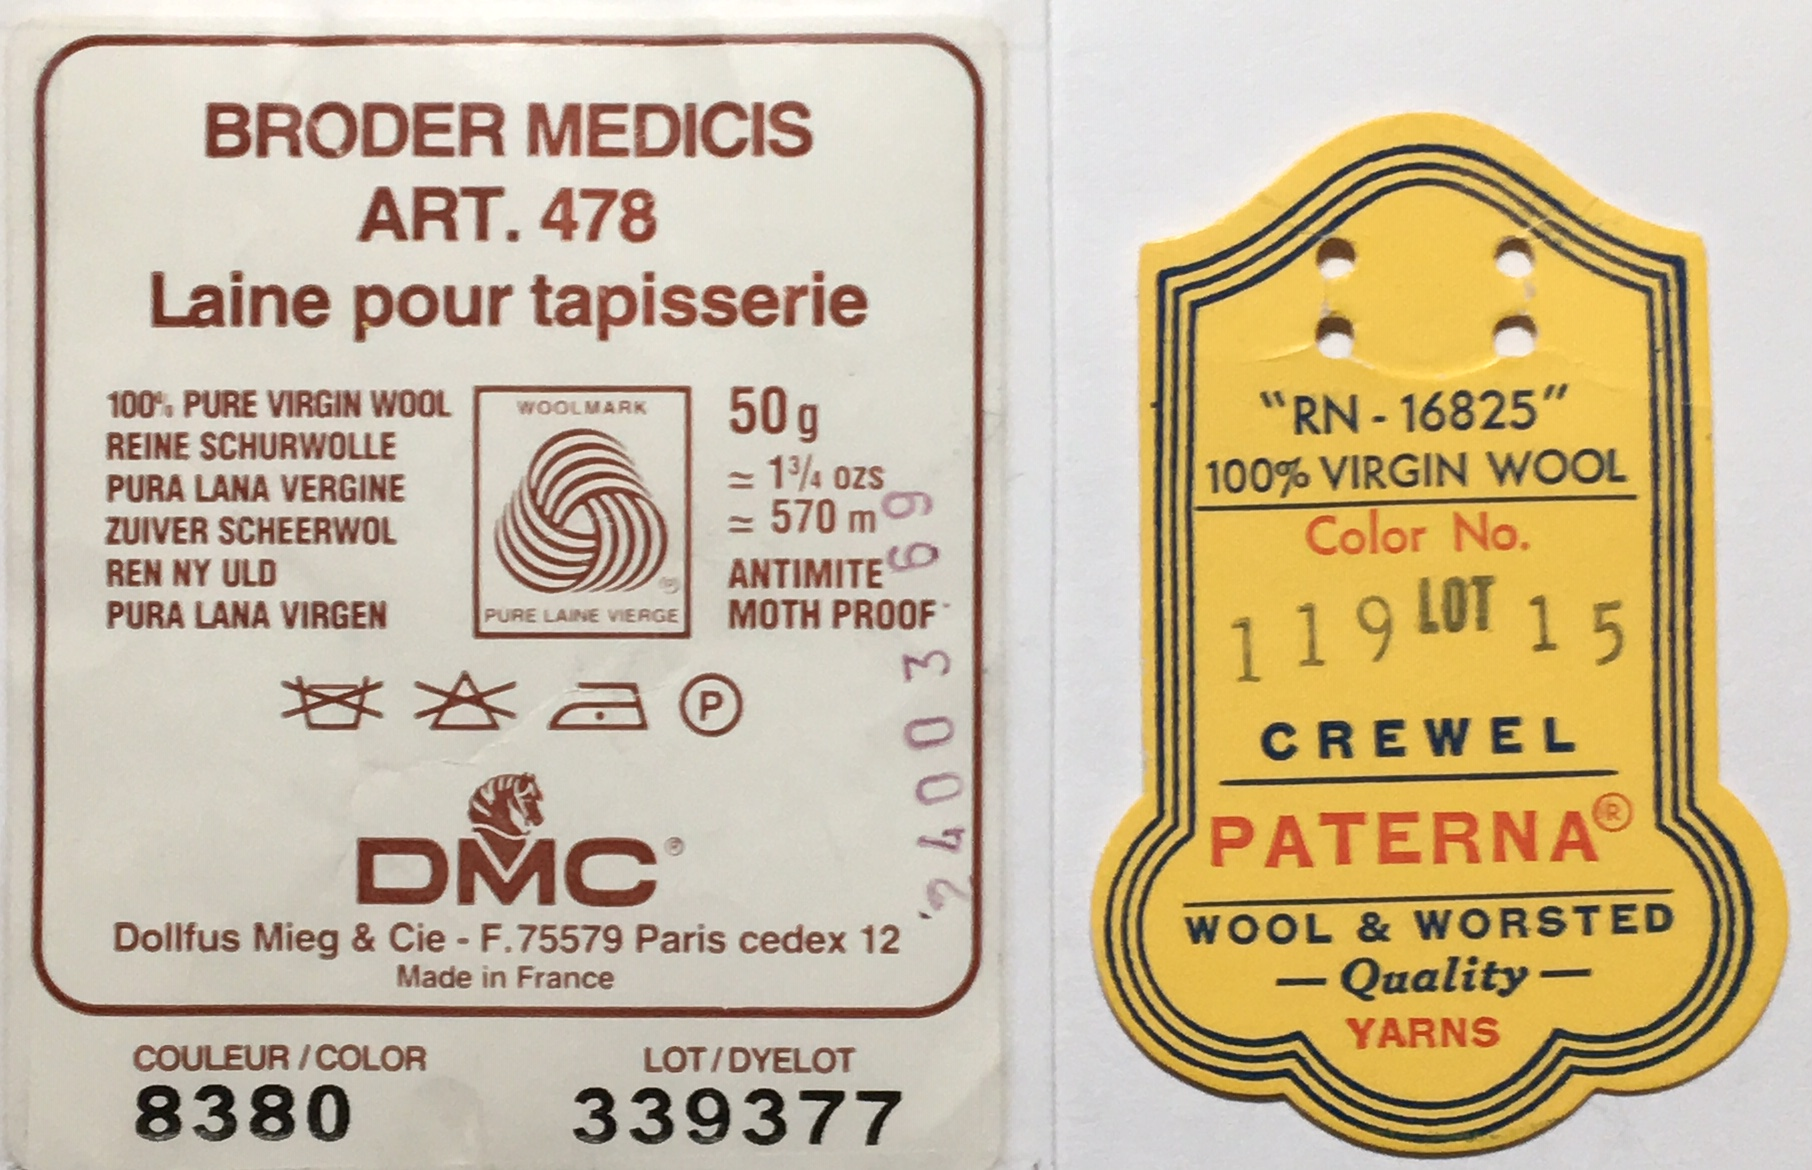 Labels for  DMC Medicis  wool and  Paterna Crewel  wool, no longer being produced.